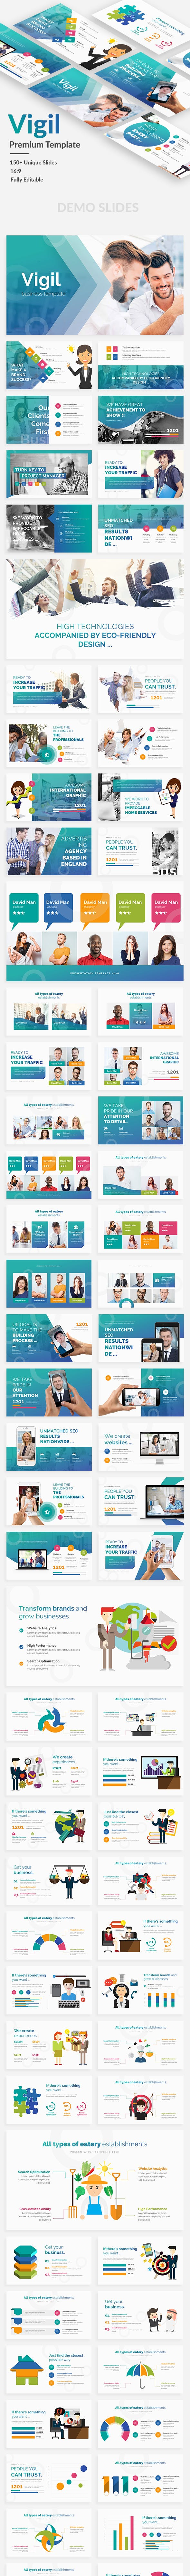 vigil business premium powerpoint template by bypaintdesign